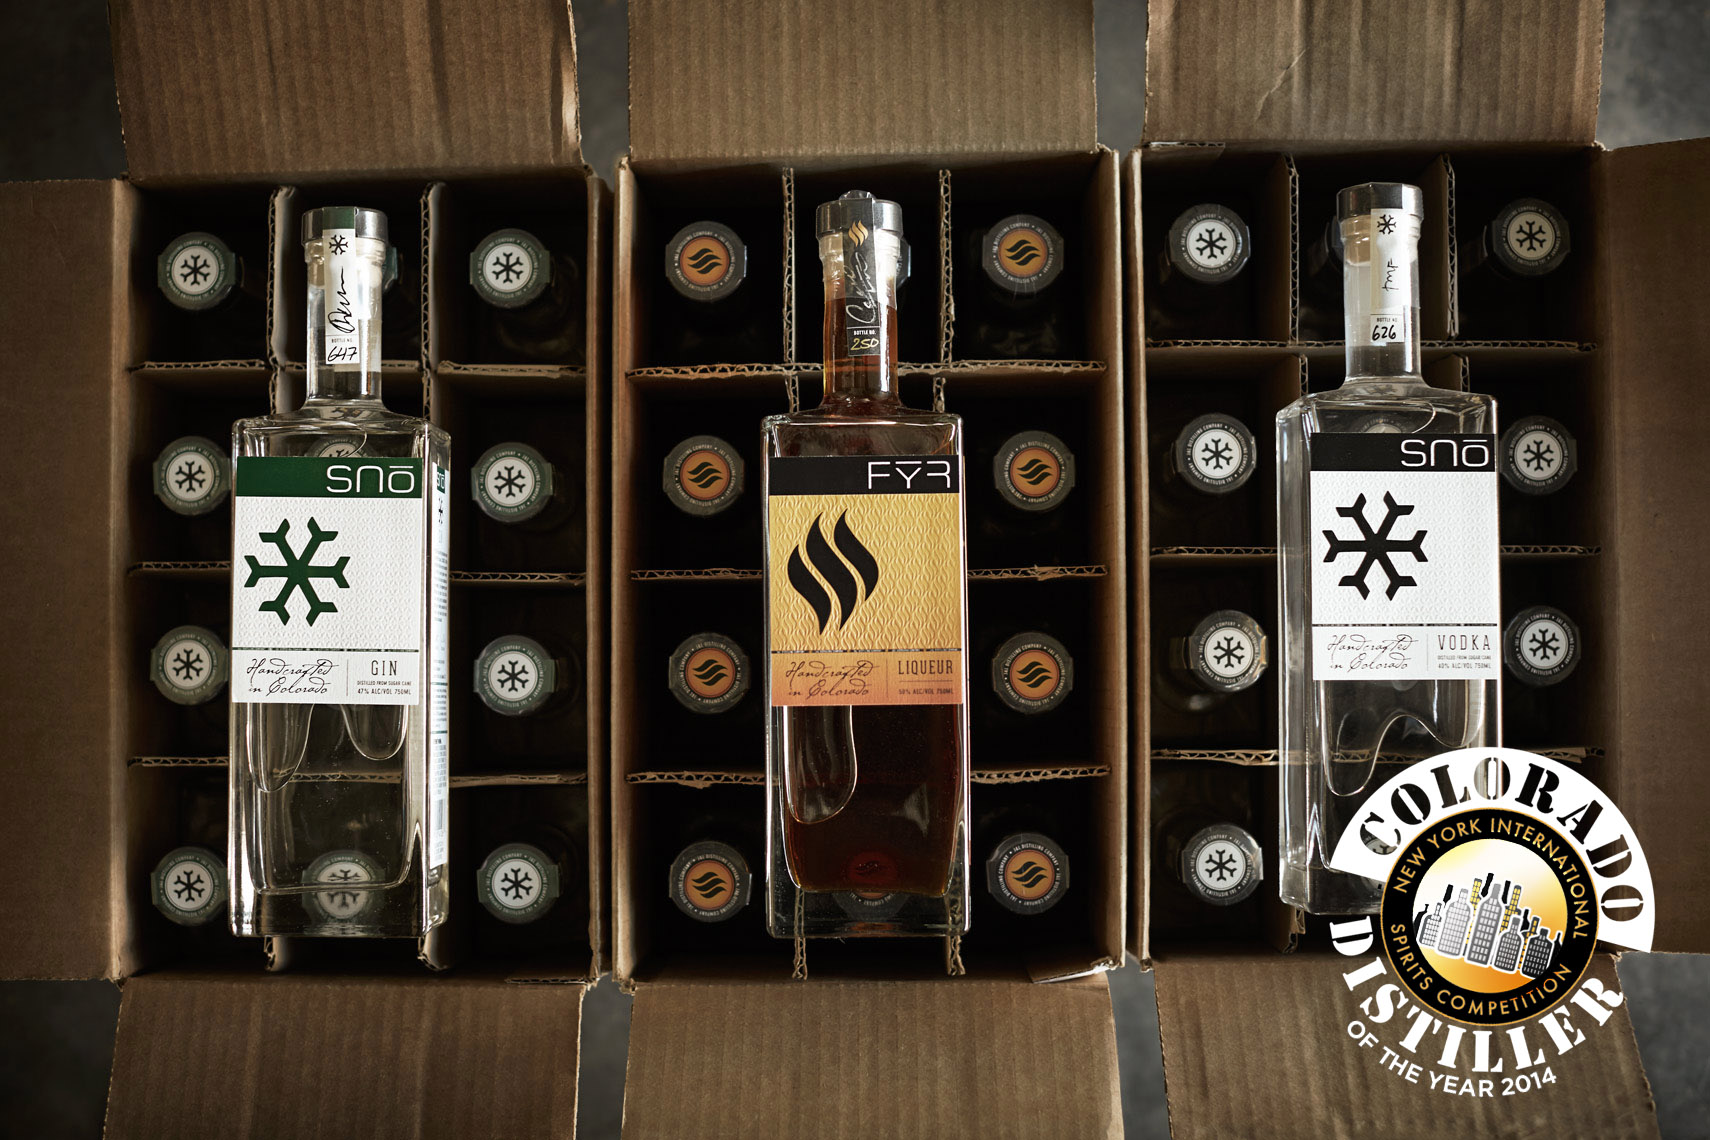 Awards from left: Breckenridge Double Gold, Silver and Gold and right: New York International Spirit Competition, Colorado Distiller of the Year 2014